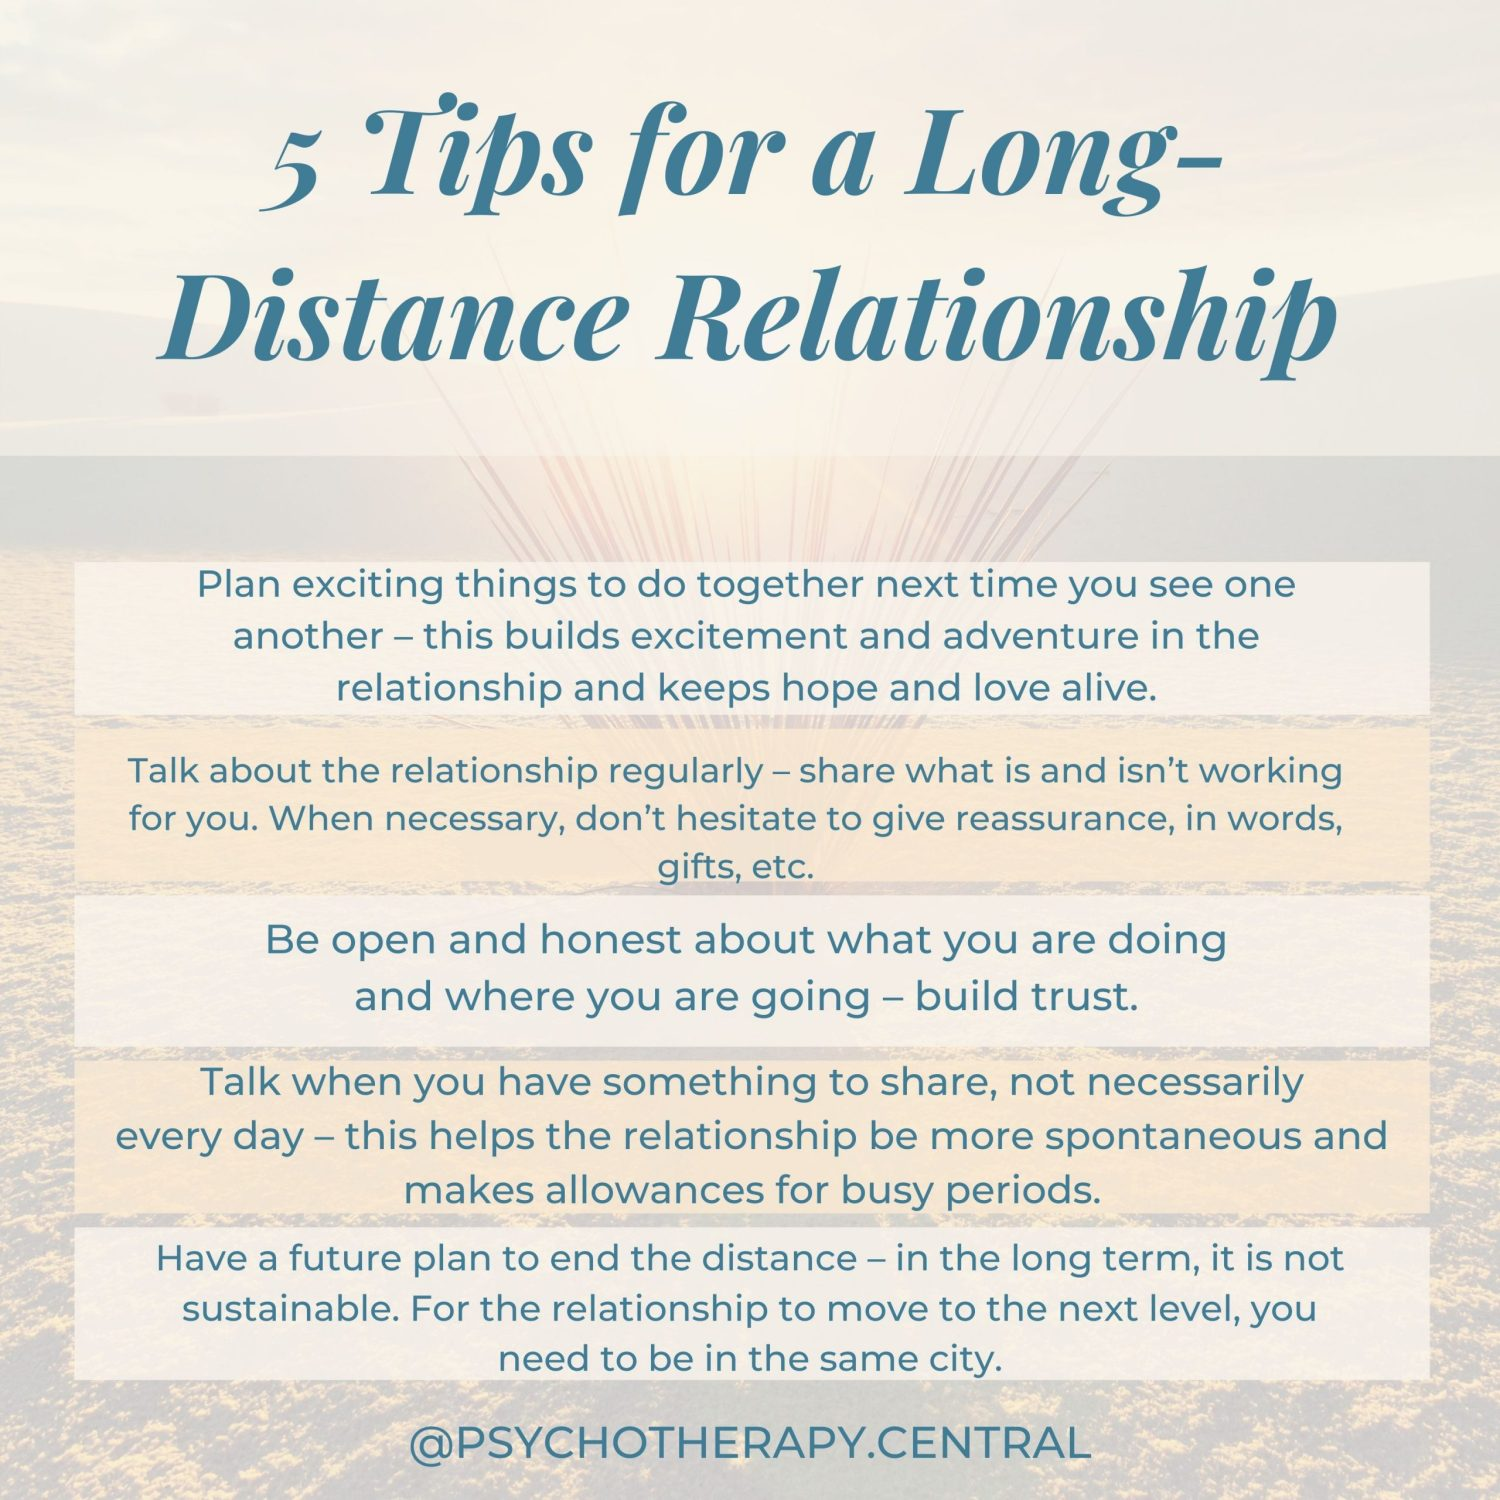 Five Tips for a Long-Distance Relationship